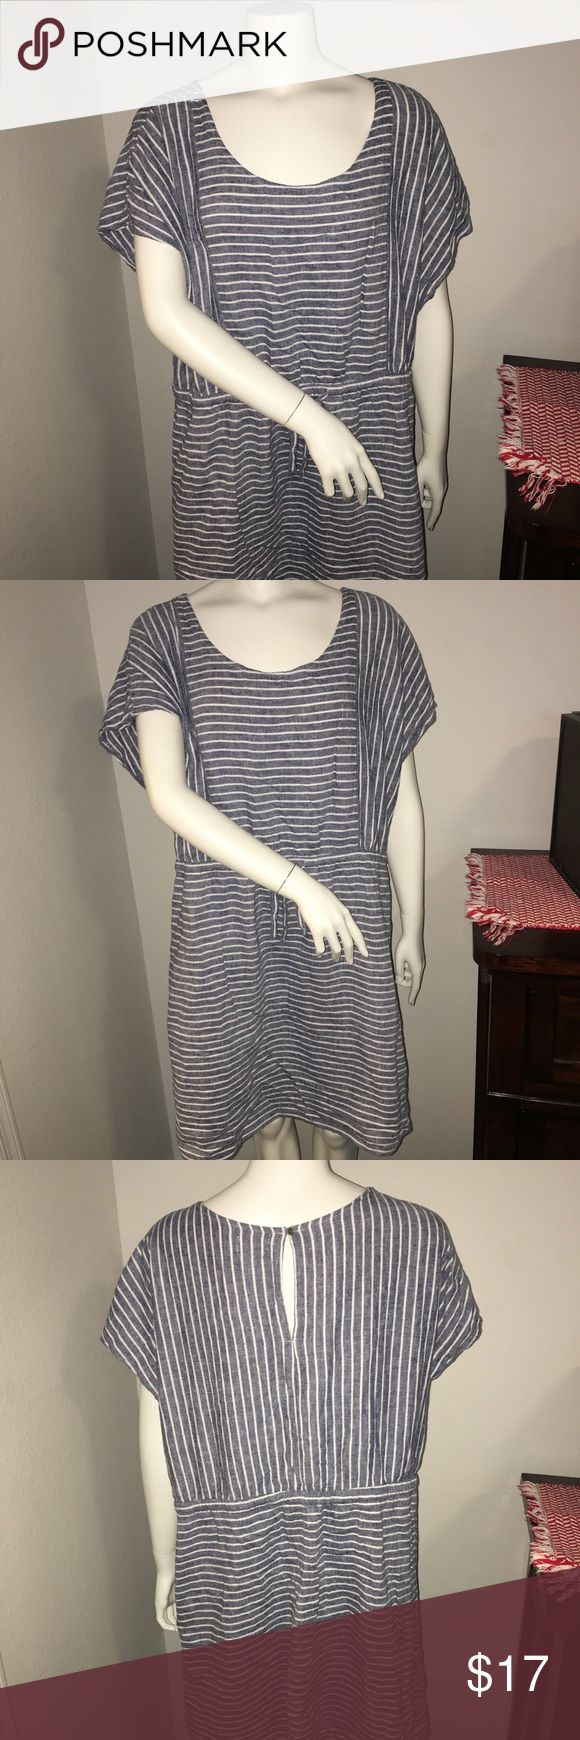 """Old navy womens plus size blue & white dress XXL Thank you for viewing my listing, for sale is a women's, Old navy Brand, Blue and white striped, knee length, plus size dress.  Sz: Xxl  Dress is in very good condition with no rips or stains. If you have any questions or would like additional photos please feel free to ask.  From under one arm to under the other measures appx 24"""" across the waist measures appx 21""""from the top of the shoulder to the bottom of the dress measures appx 38"""" Old…"""